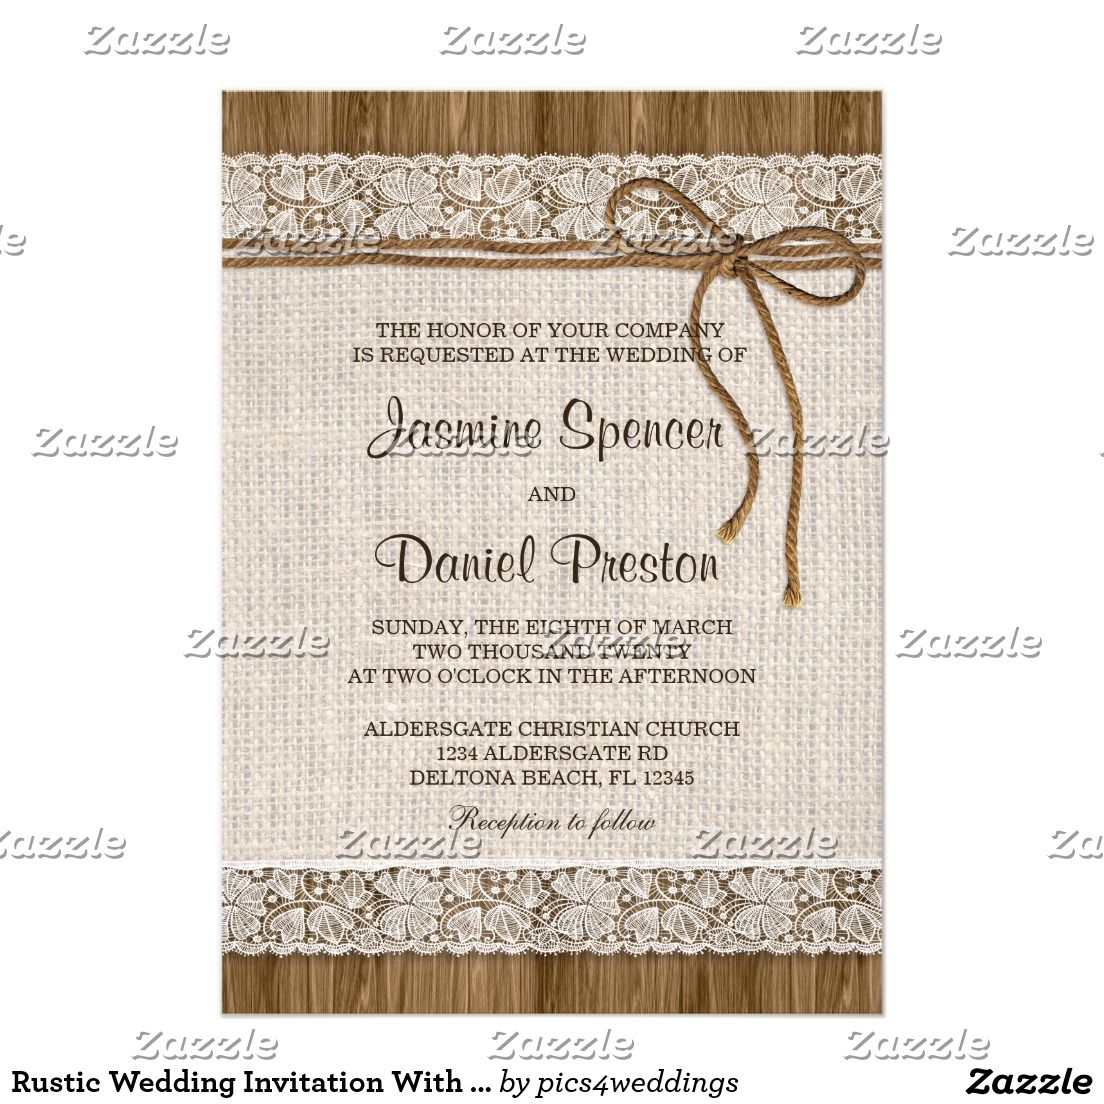 Rustic country burlap string lights lace wedding card - Rustic Wedding Invitation With Burlap And Lace